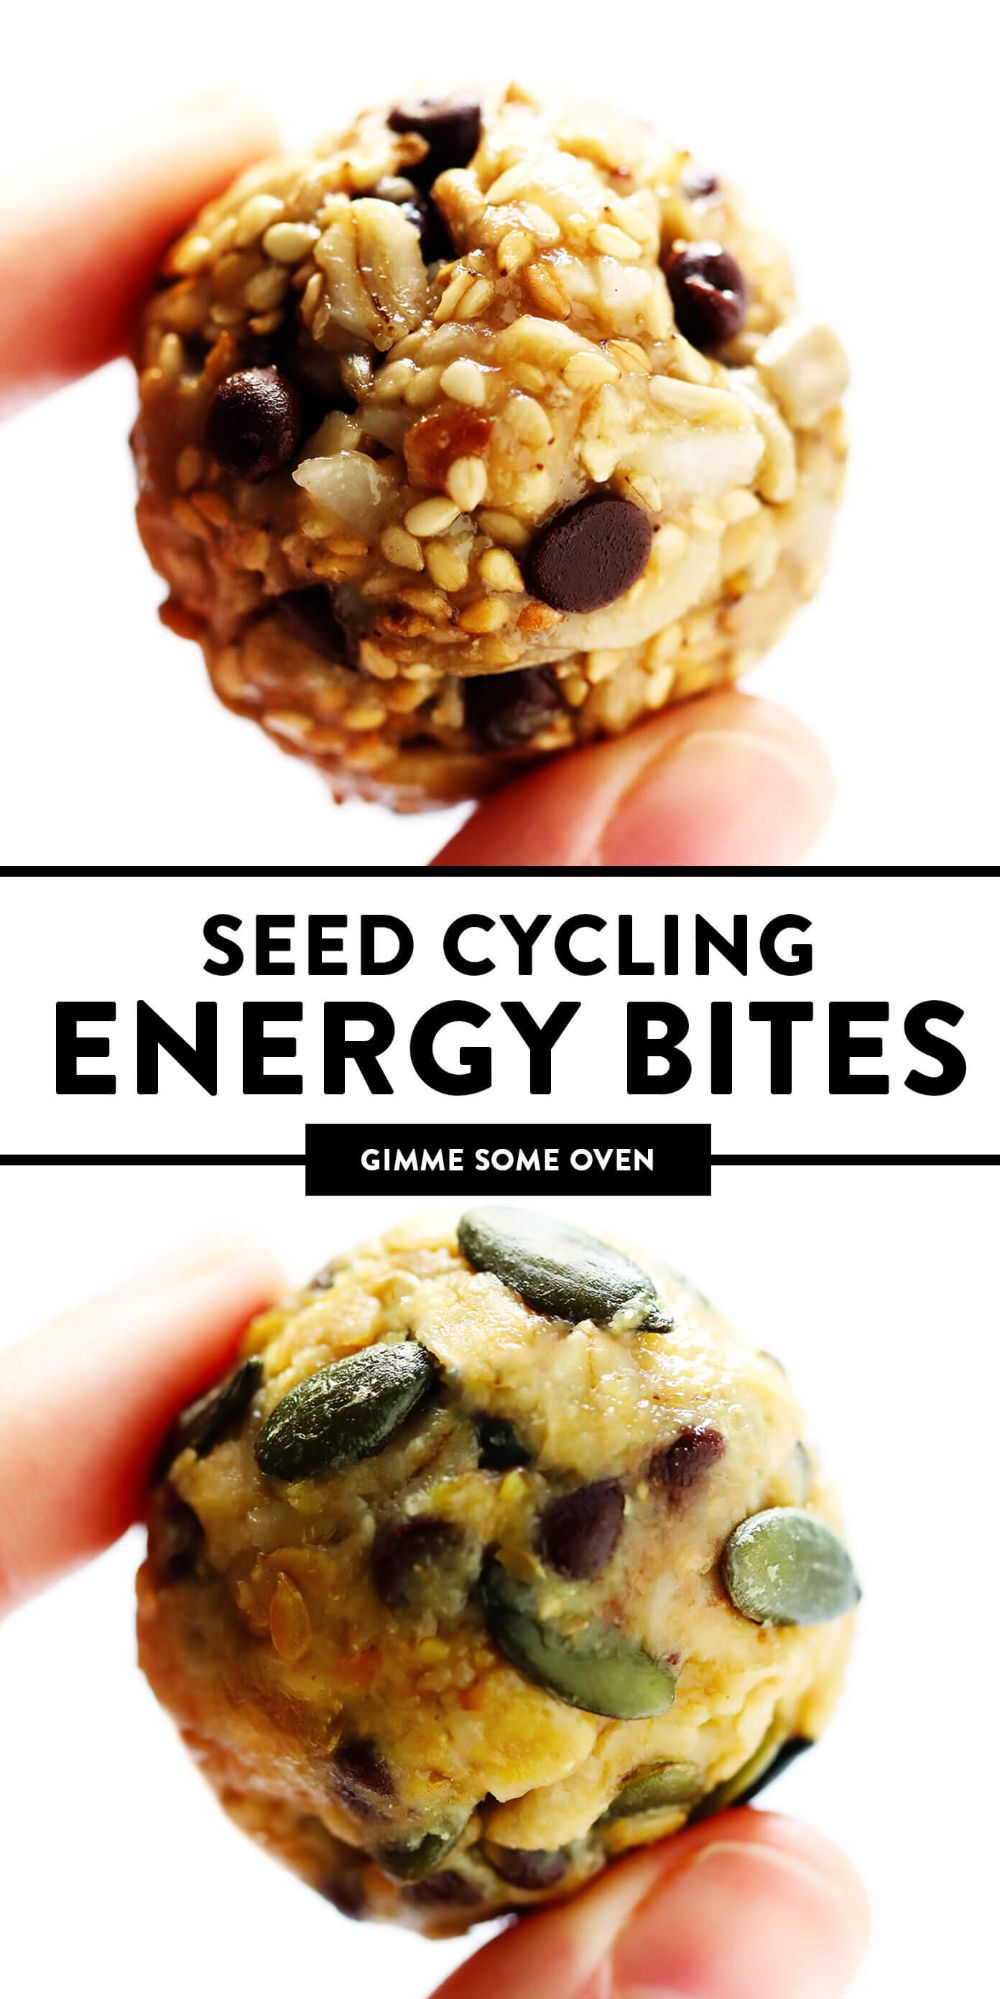 This simple Seed Cycling Energy Bites recipe is a delicious way to eat the daily serving of seeds recommended to help naturally balance women's hormones. Naturally gluten-free, easy to make, and delicious too! | gimmesomeoven.com #healthy #snack #hormones #health #glutenfree #vegan #breakfast #seedcycling